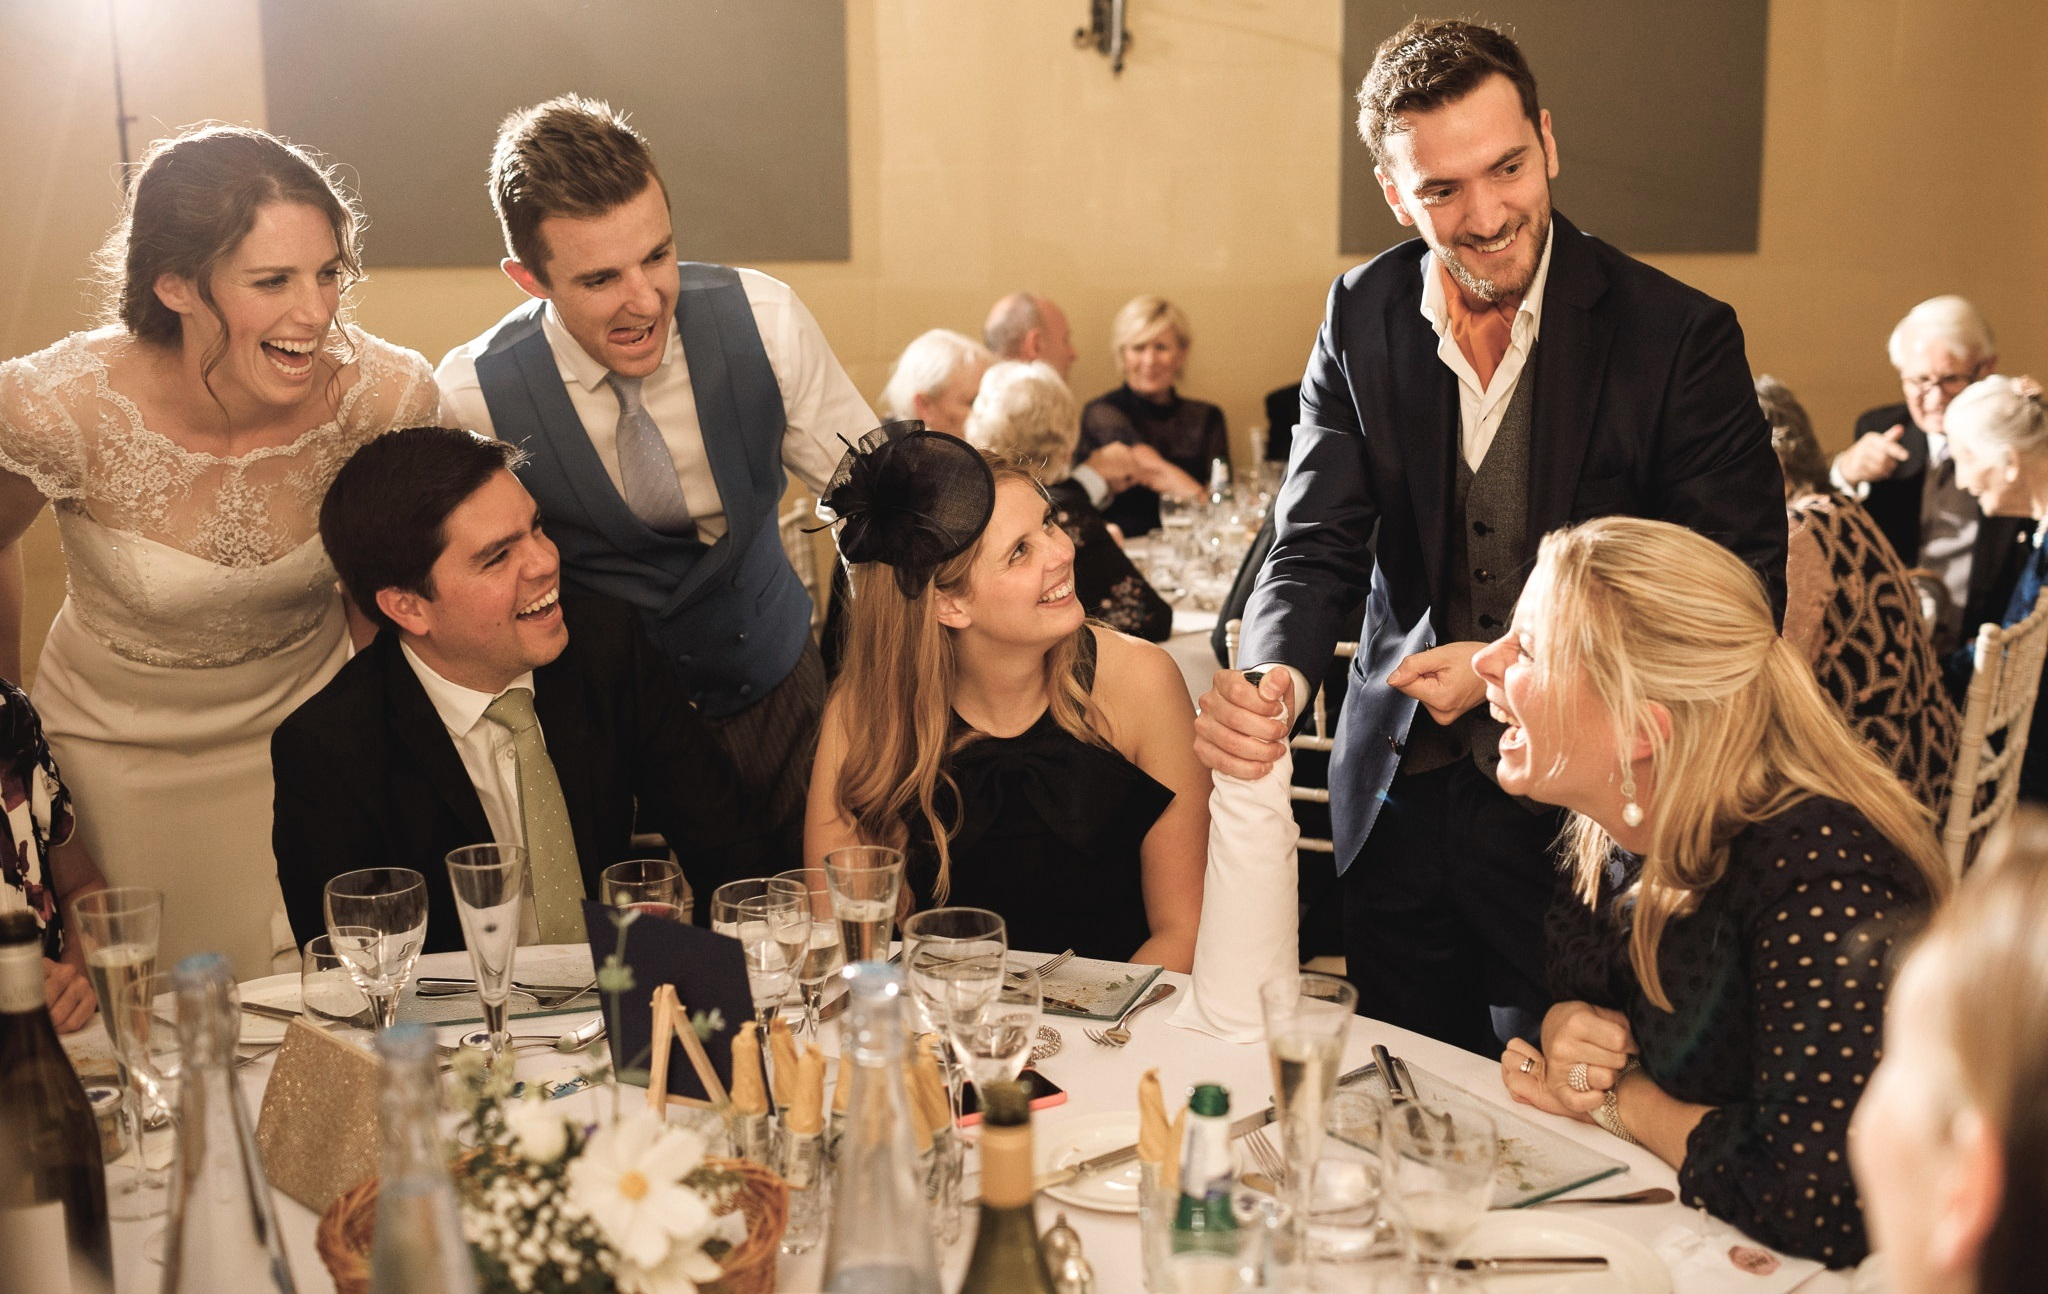 THE MAGICAL HOST - The Magical ToastmasterYour guests will be in safe hand throughout your wedding day. The ice is broken during reception drinks as guests are greeted with first class close-up magic. An exciting atmosphere is created during the meal, creating interesting conversation around the room.Guests are seamlessly introduced to each of the speeches and after the wedding breakfast the evening guests get have a taste of magic to give them a flavour of how the day has been so far.